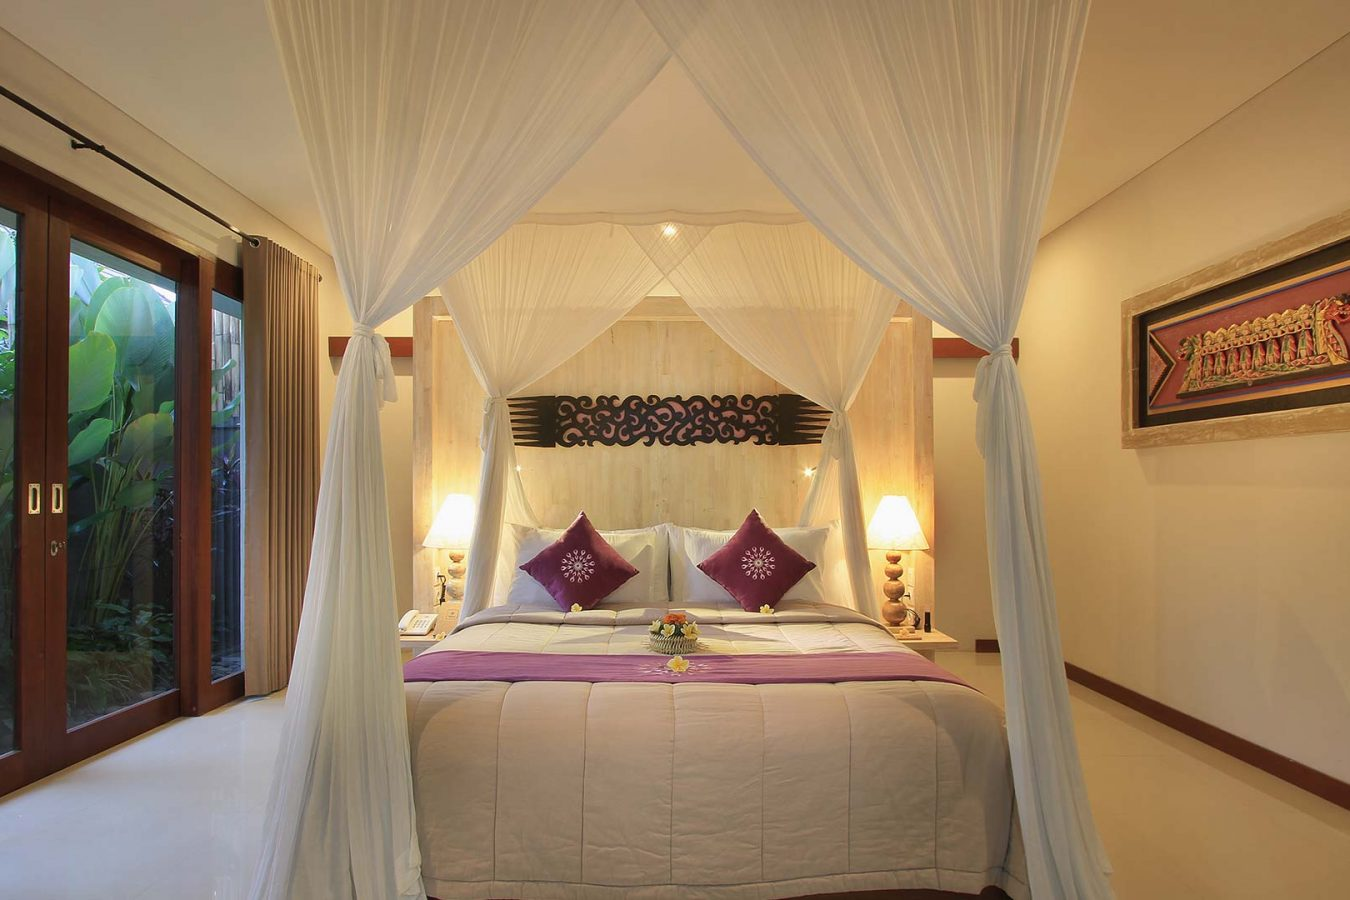 big size bed room at dedary kriyamaha villa